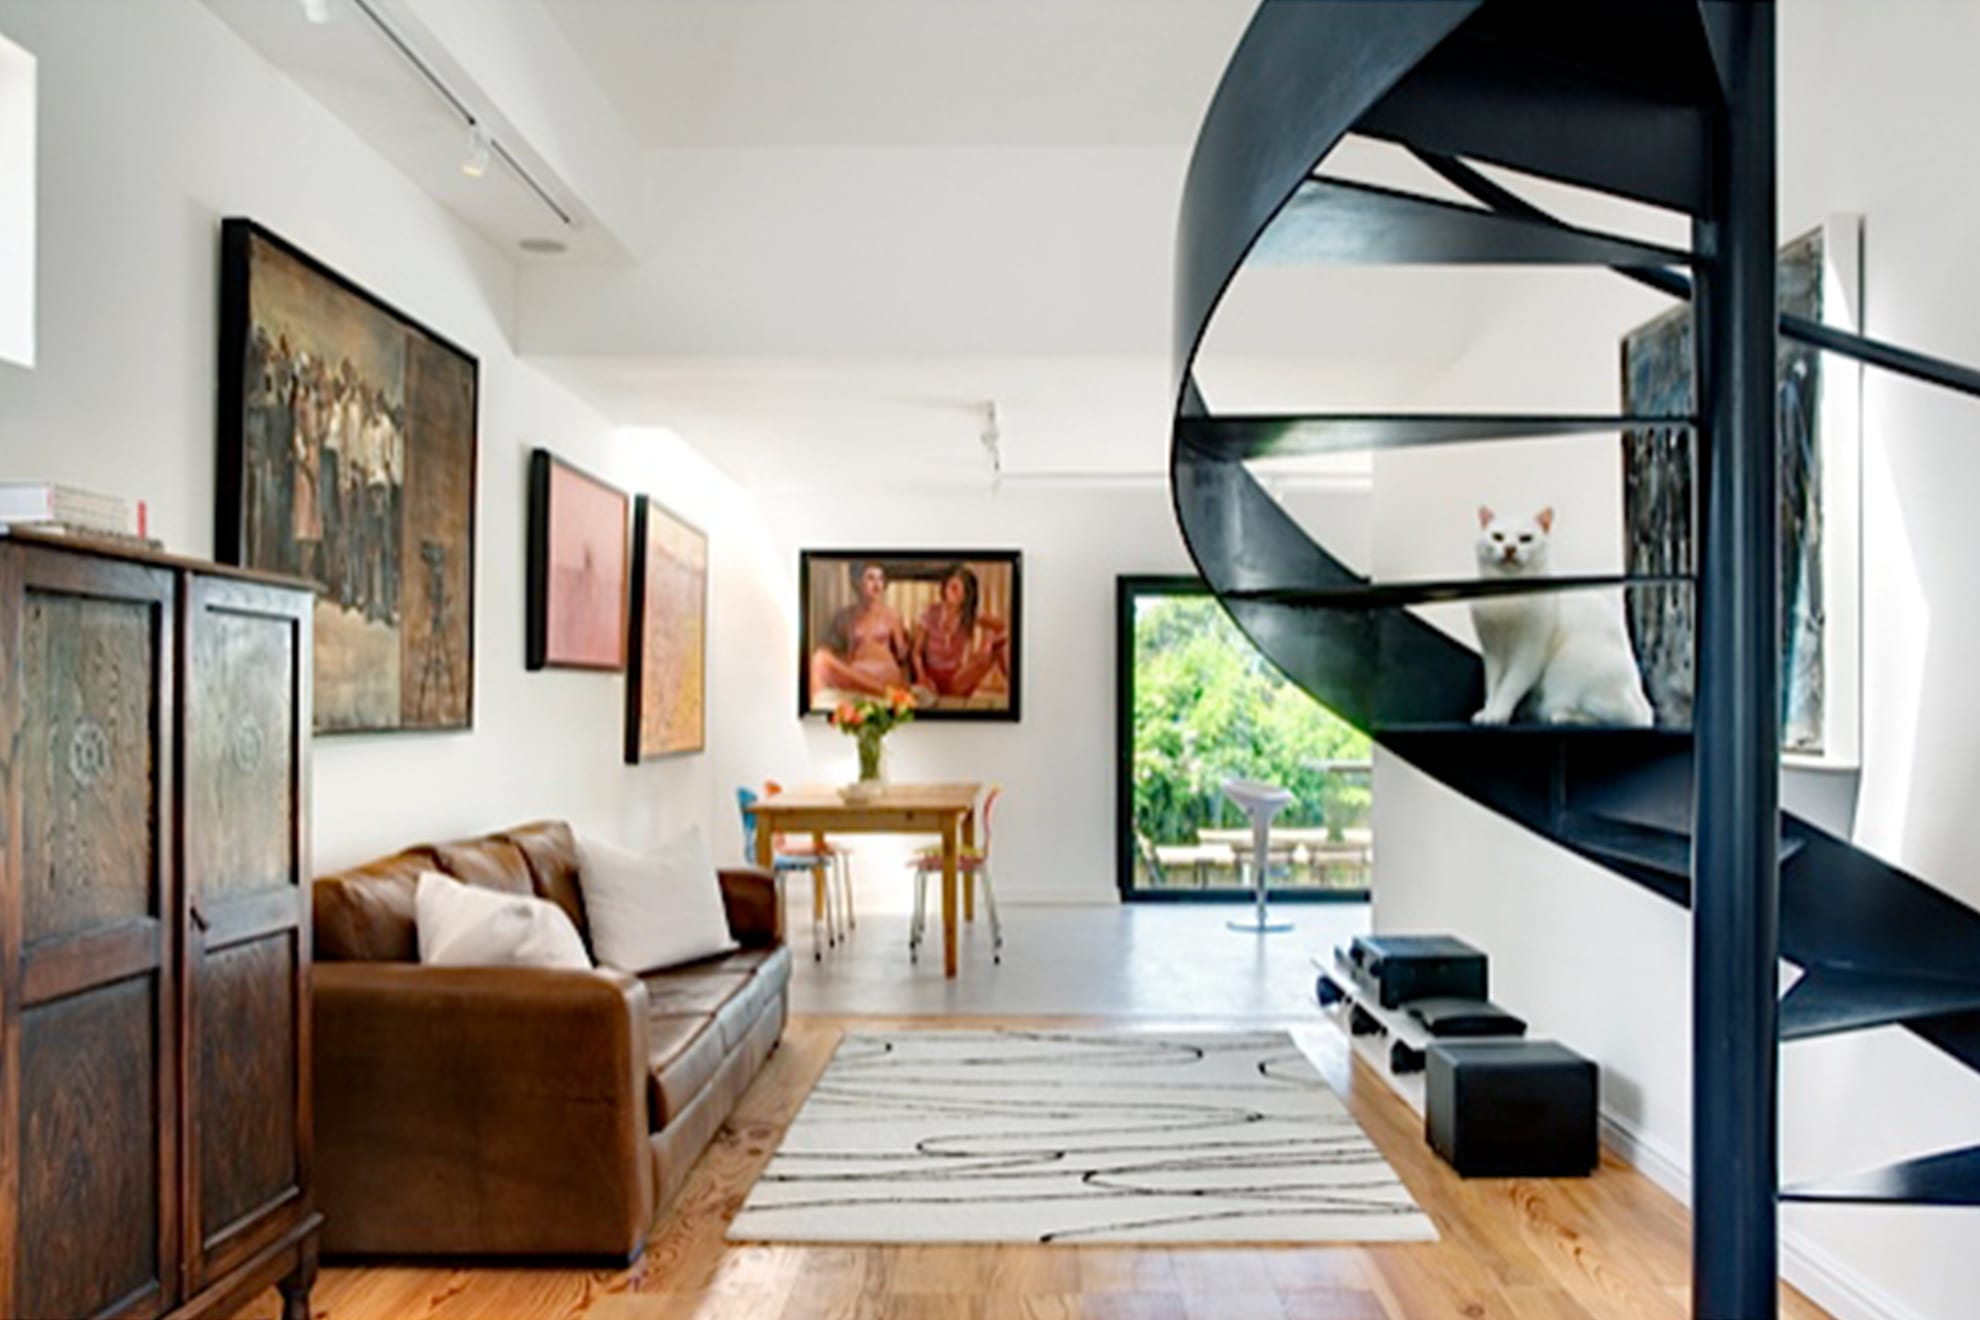 Home Architects and Interior Designers in Cape Town